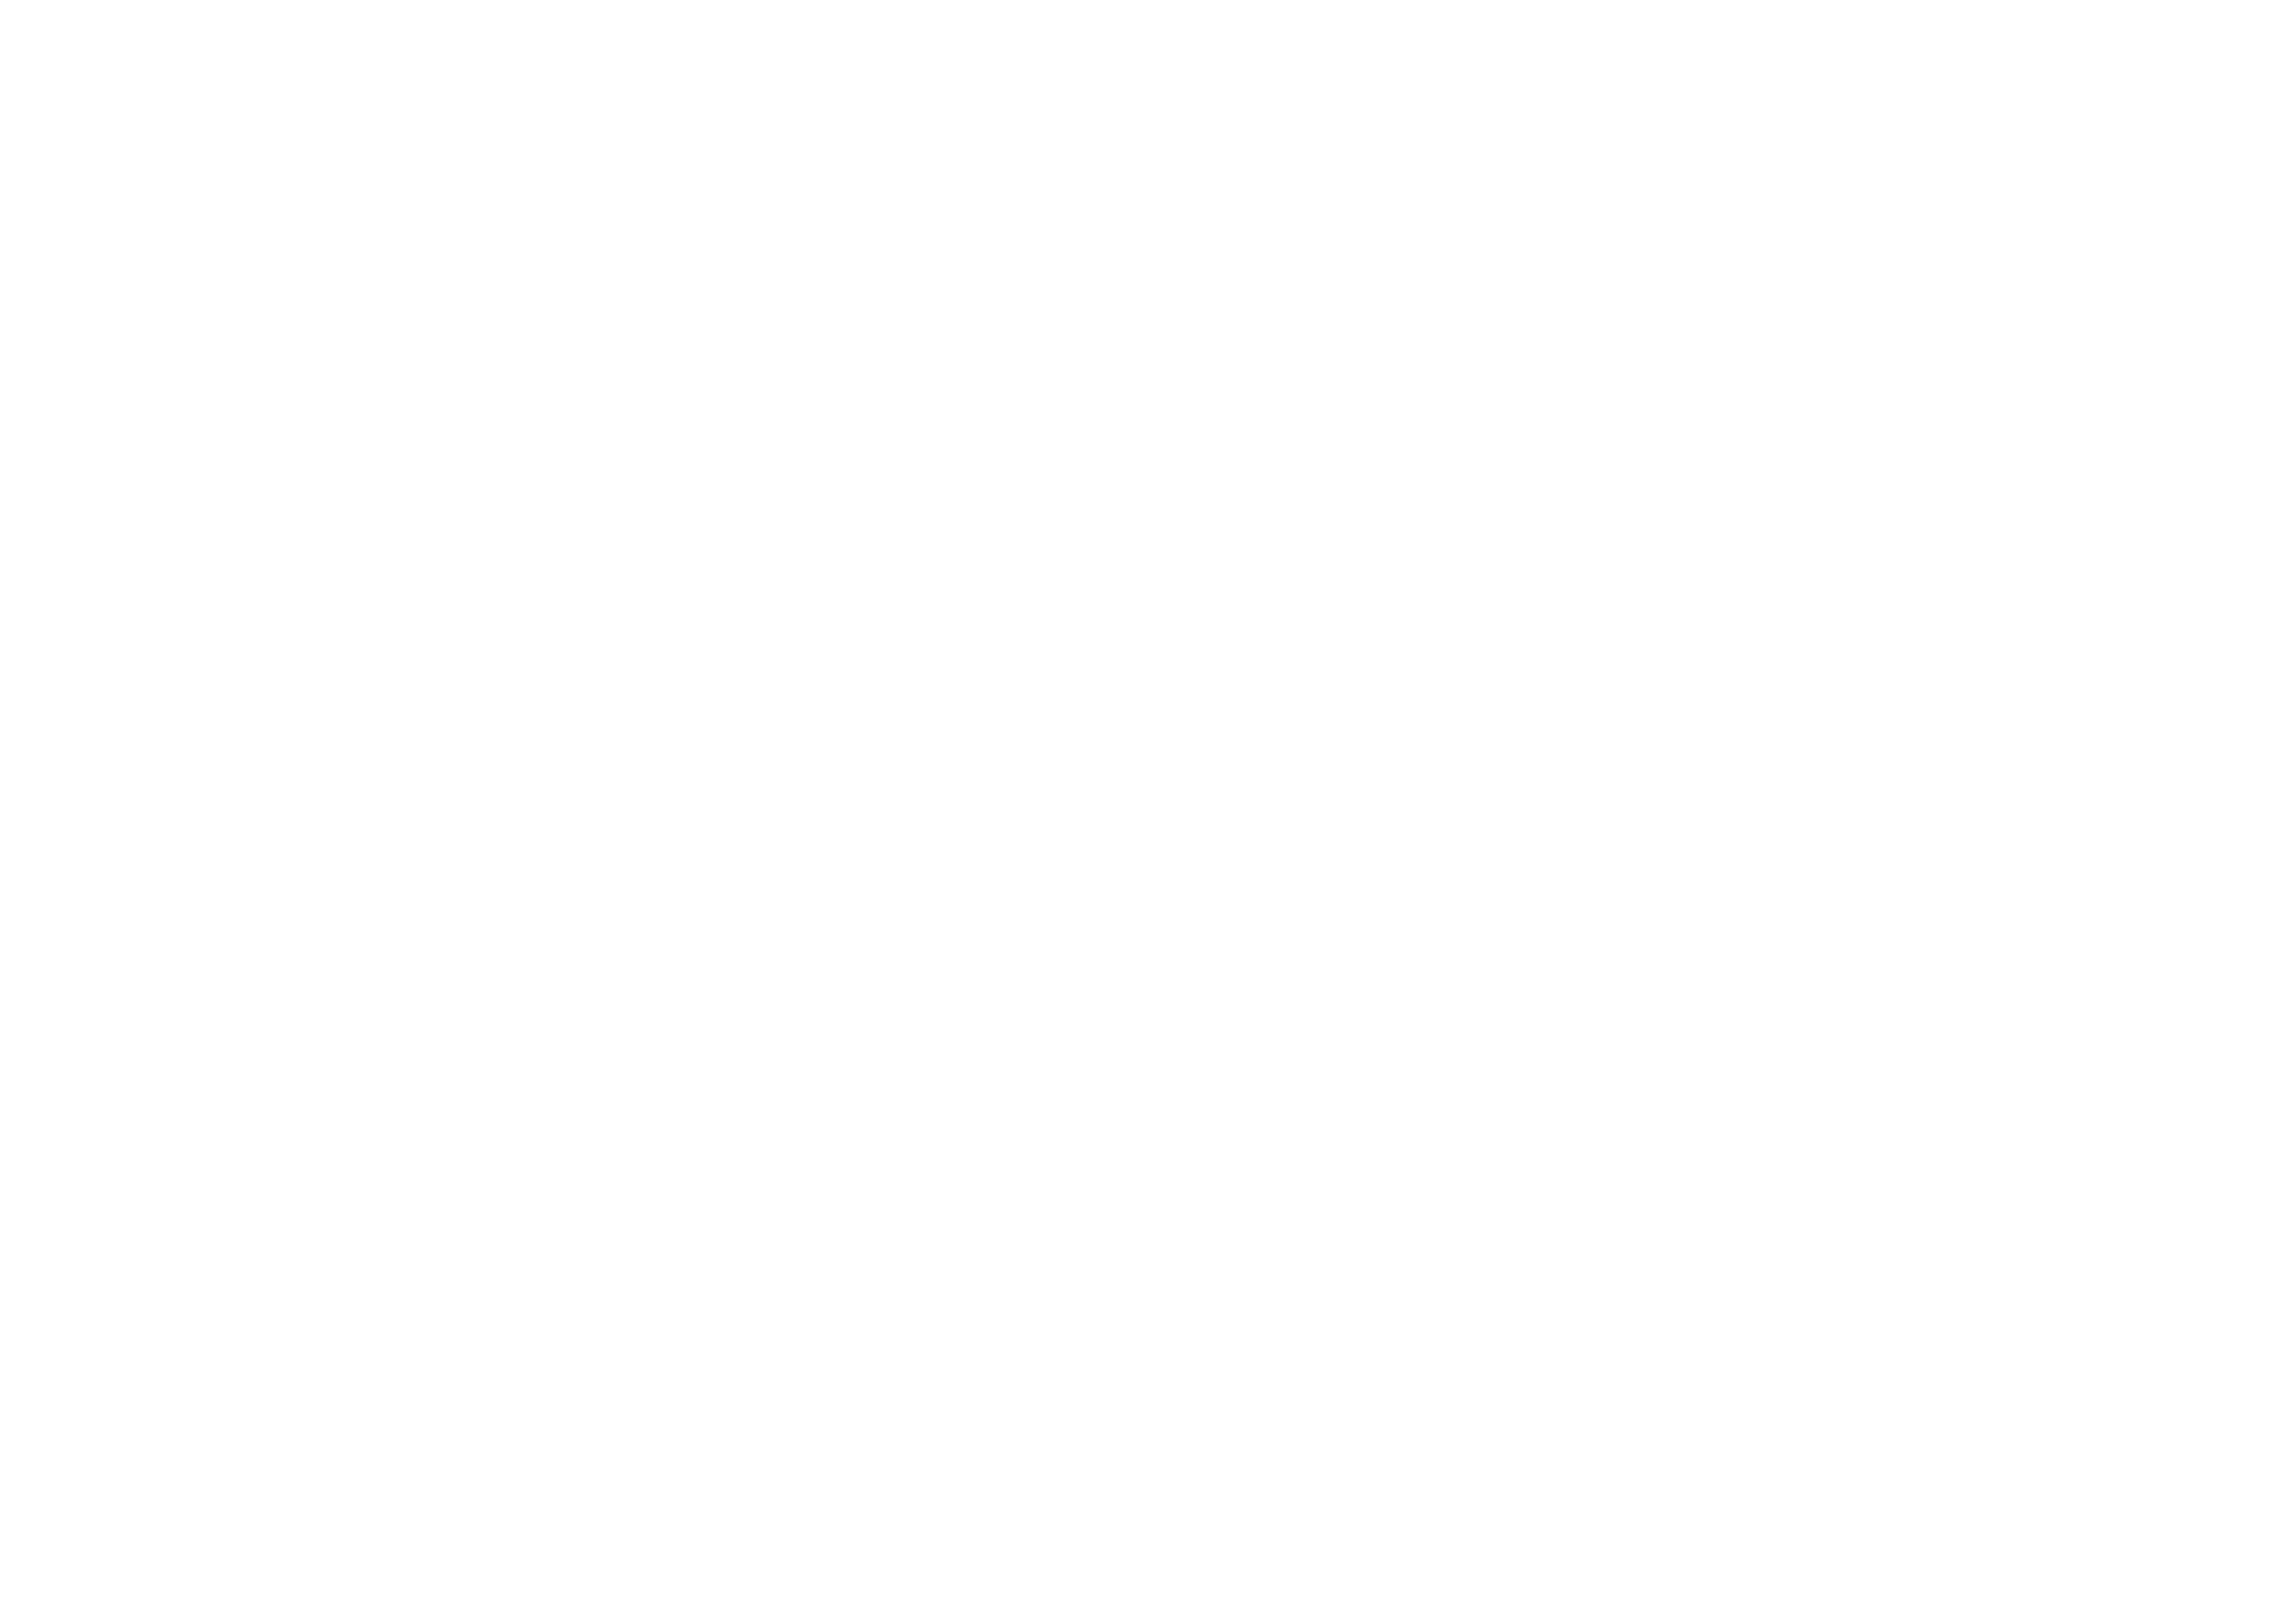 KMGS Photography